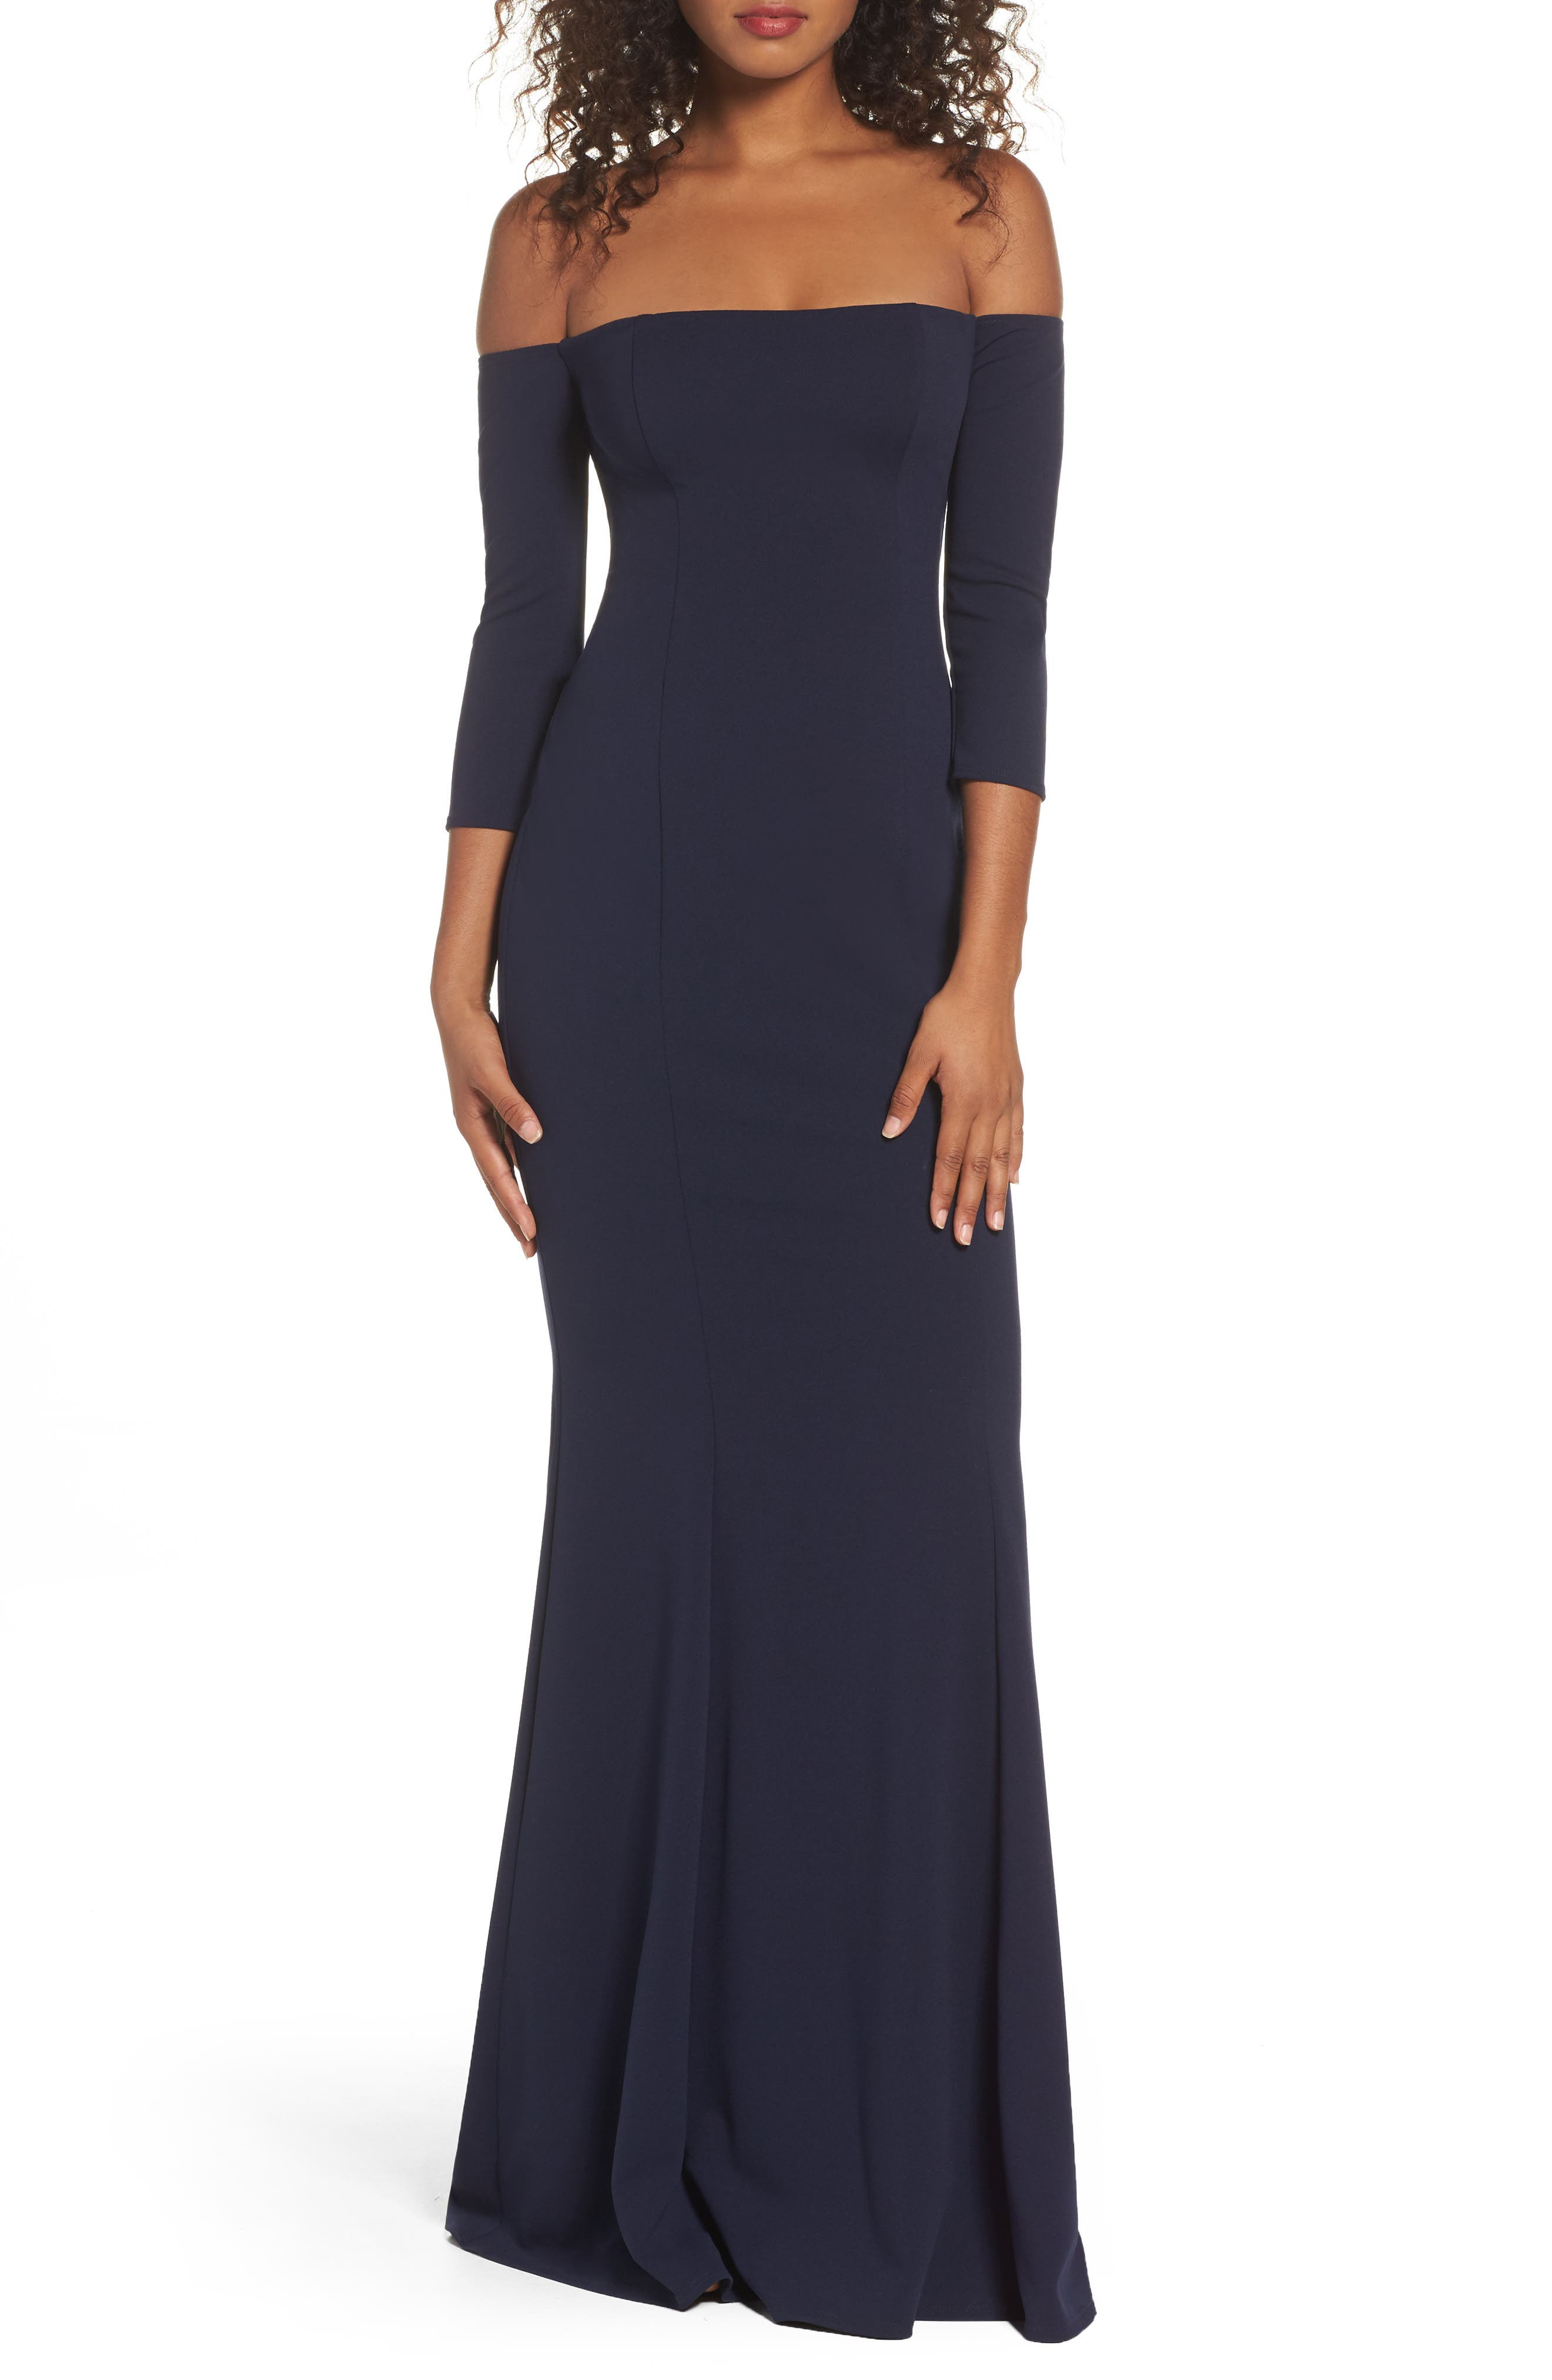 Brentwood Three-Quarter Sleeve Off the Shoulder Gown,                             Main thumbnail 1, color,                             NAVY